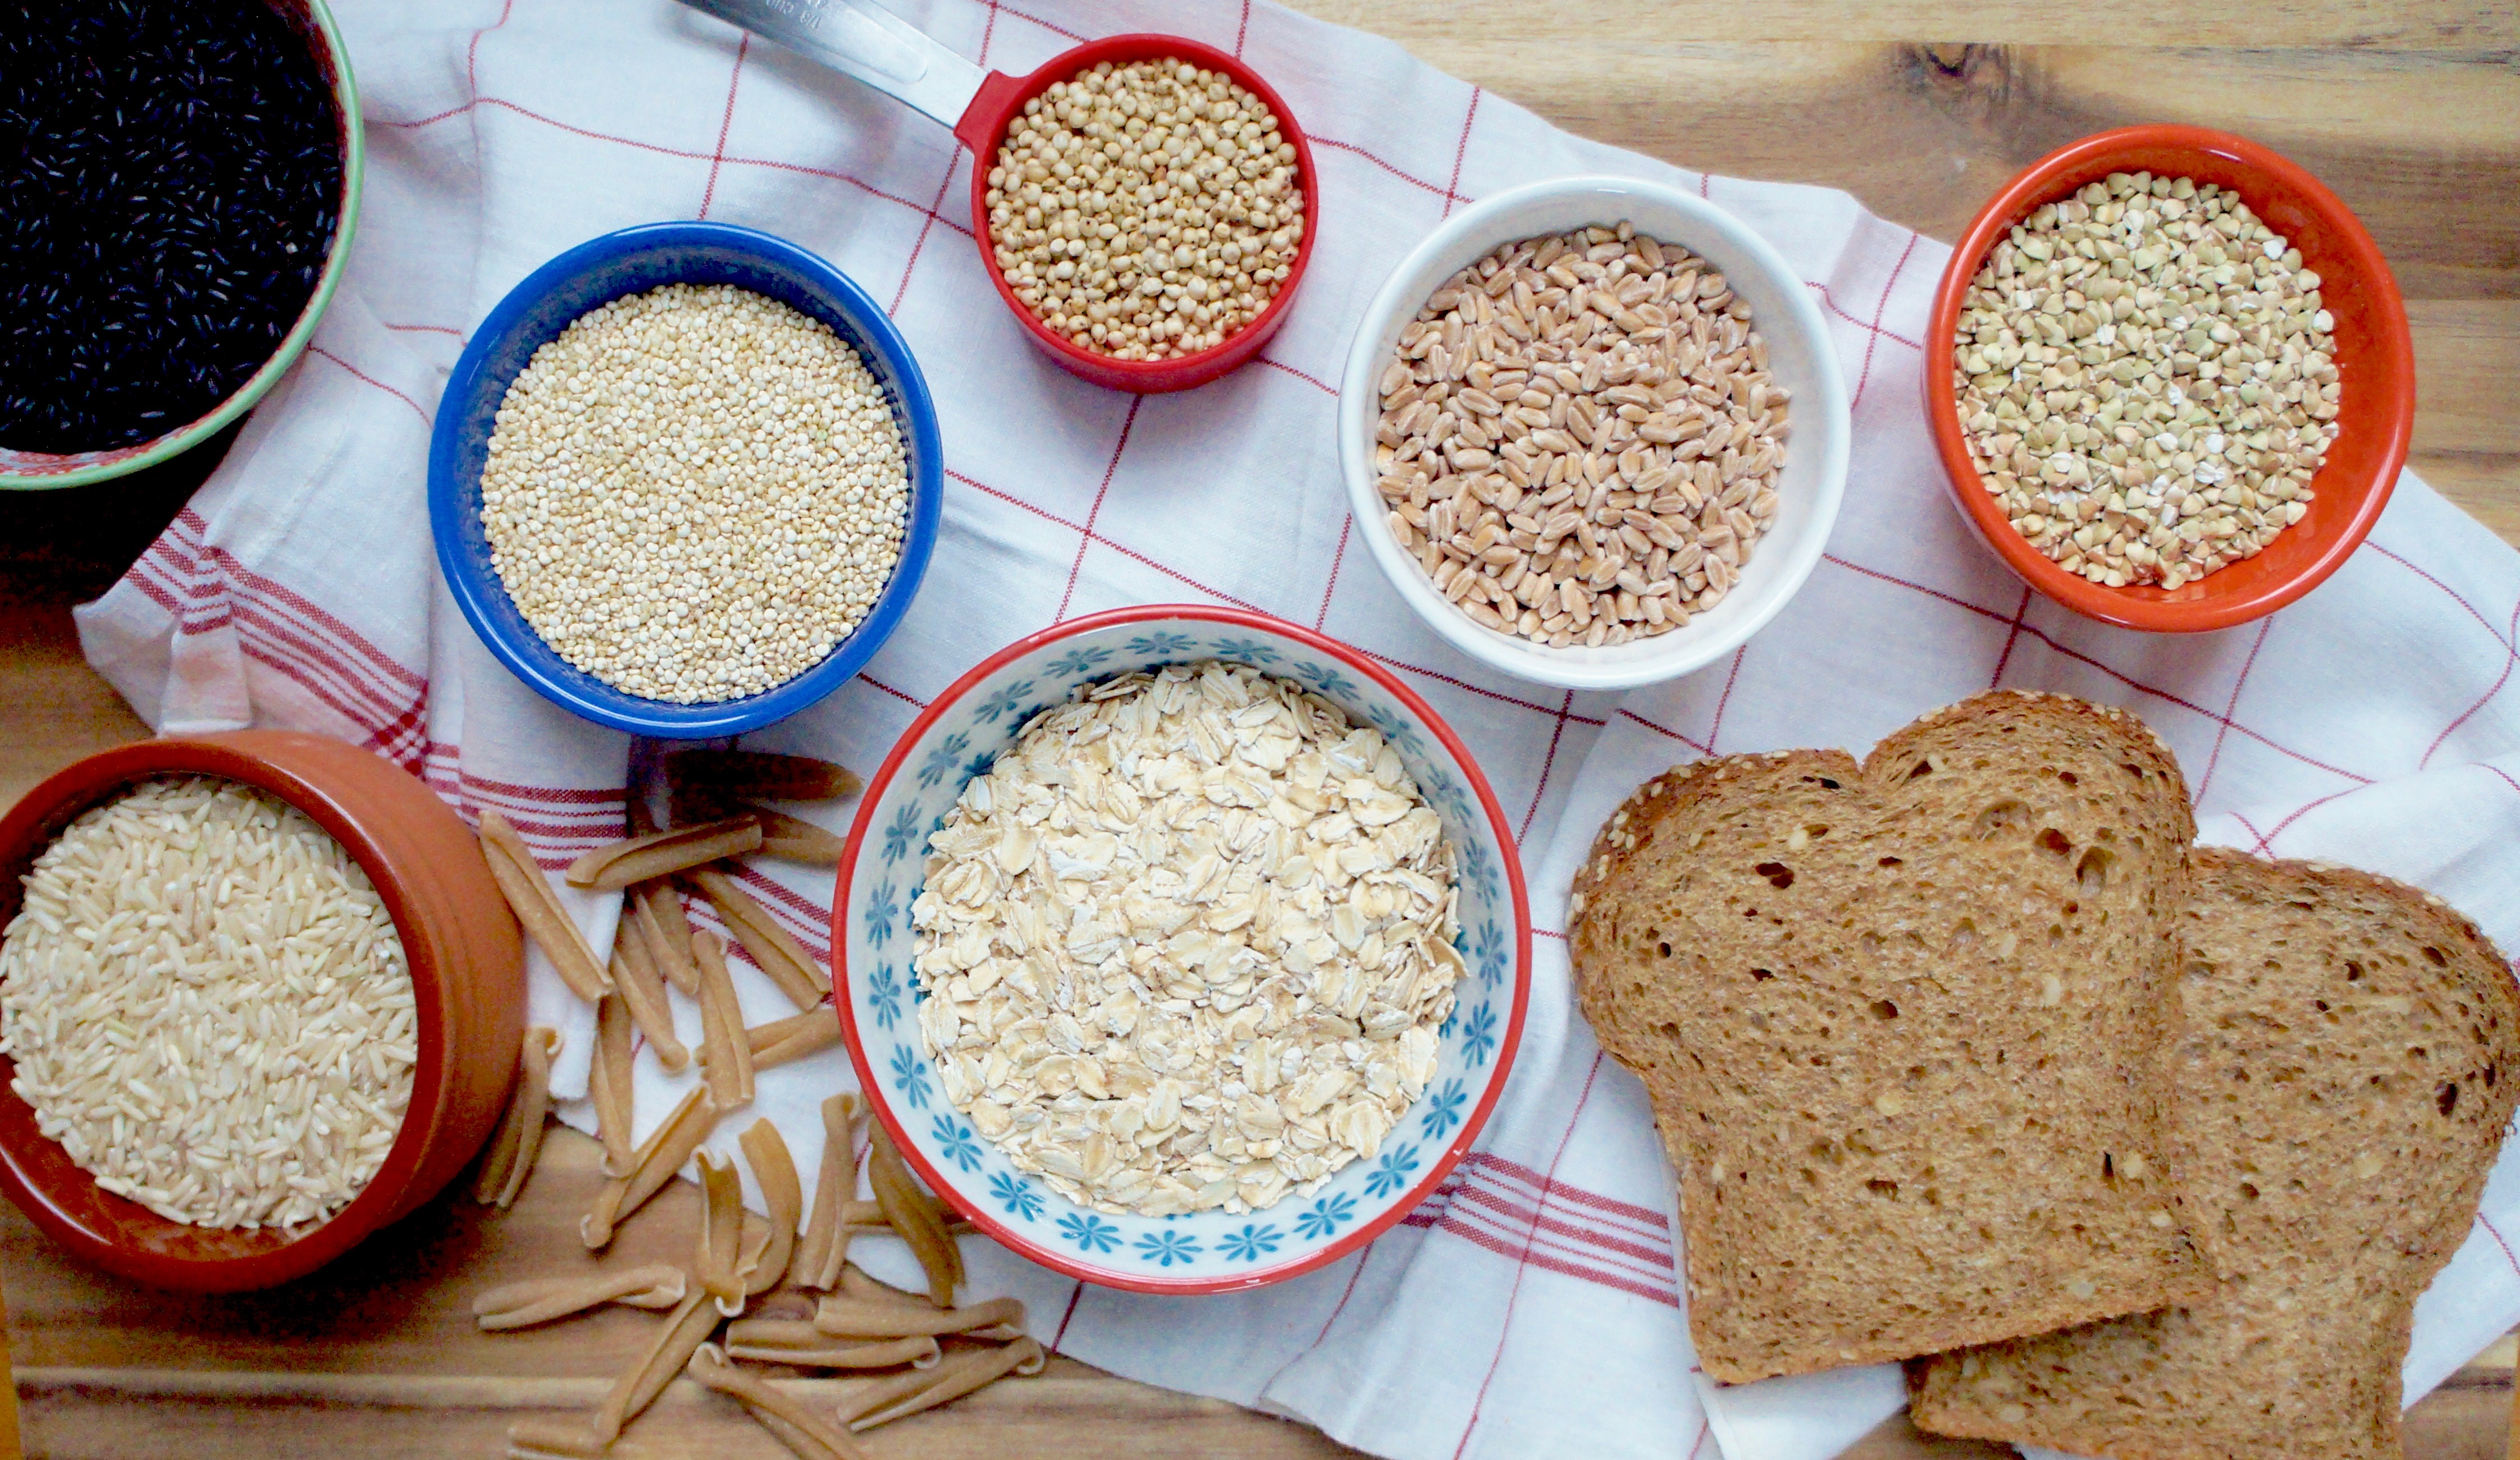 Assorted Grains in bowls and slices of bread